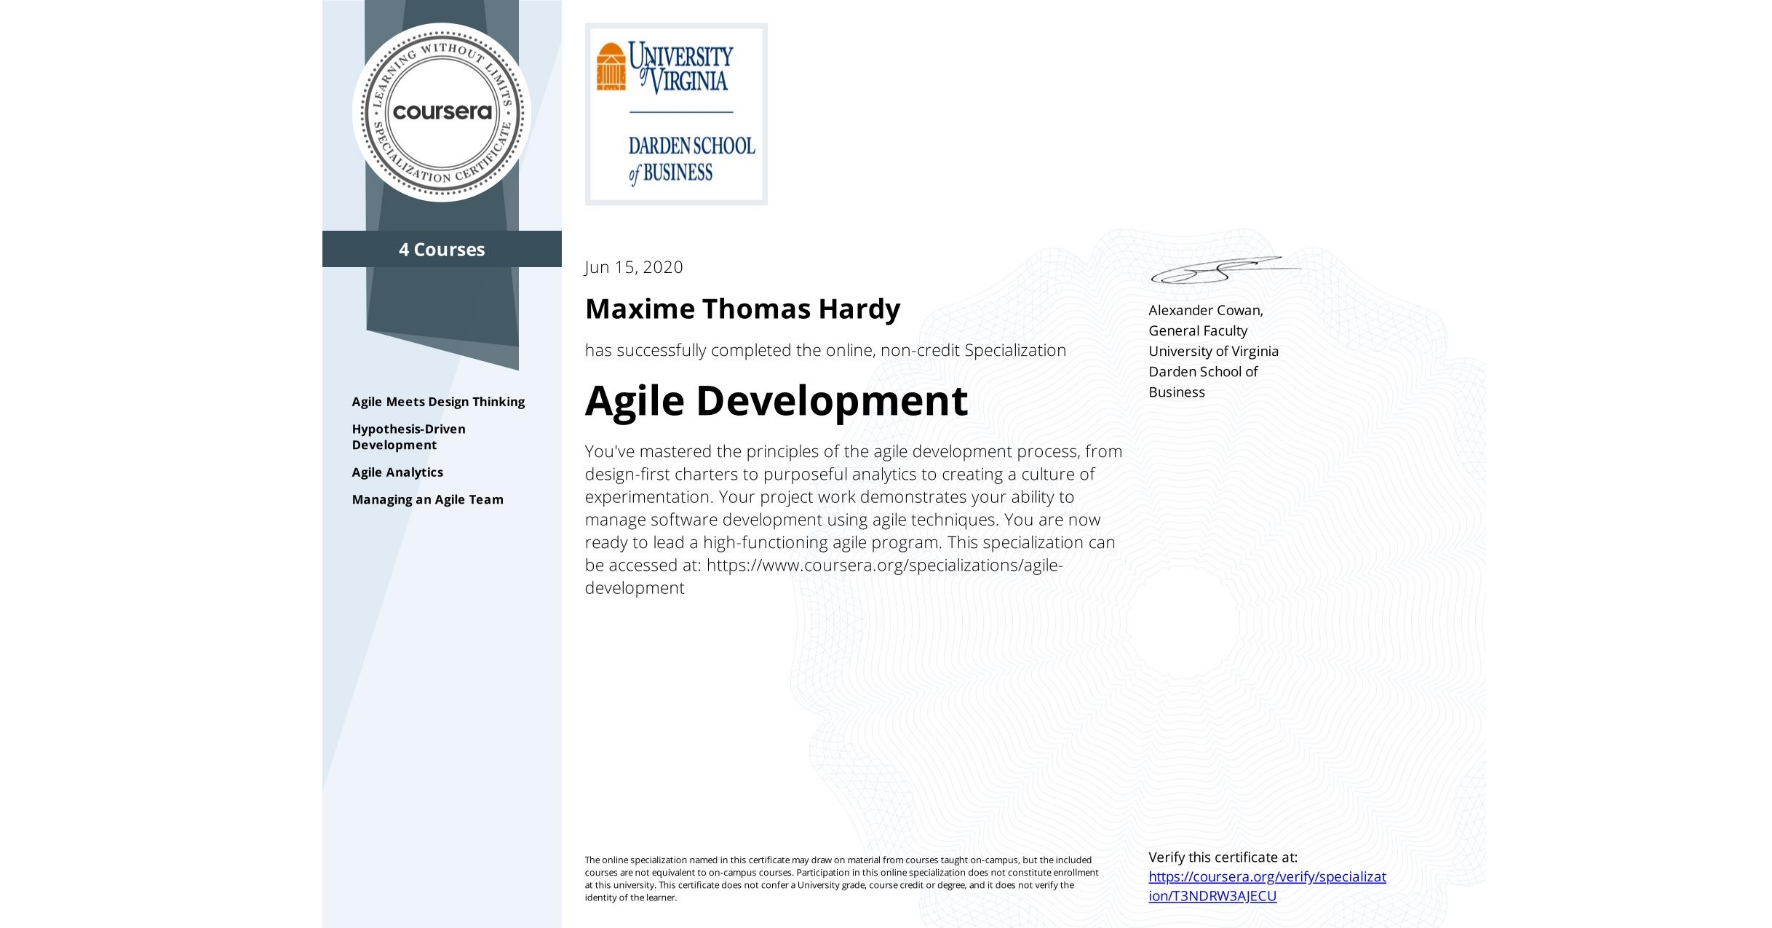 View certificate for Maxime Thomas Hardy, Agile Development, offered through Coursera. You've mastered the principles of the agile development process, from design-first charters to purposeful analytics to creating a culture of experimentation. Your project work demonstrates your ability to manage software development using agile techniques. You are now ready to lead a high-functioning agile program.  This specialization can be accessed at: https://www.coursera.org/specializations/agile-development